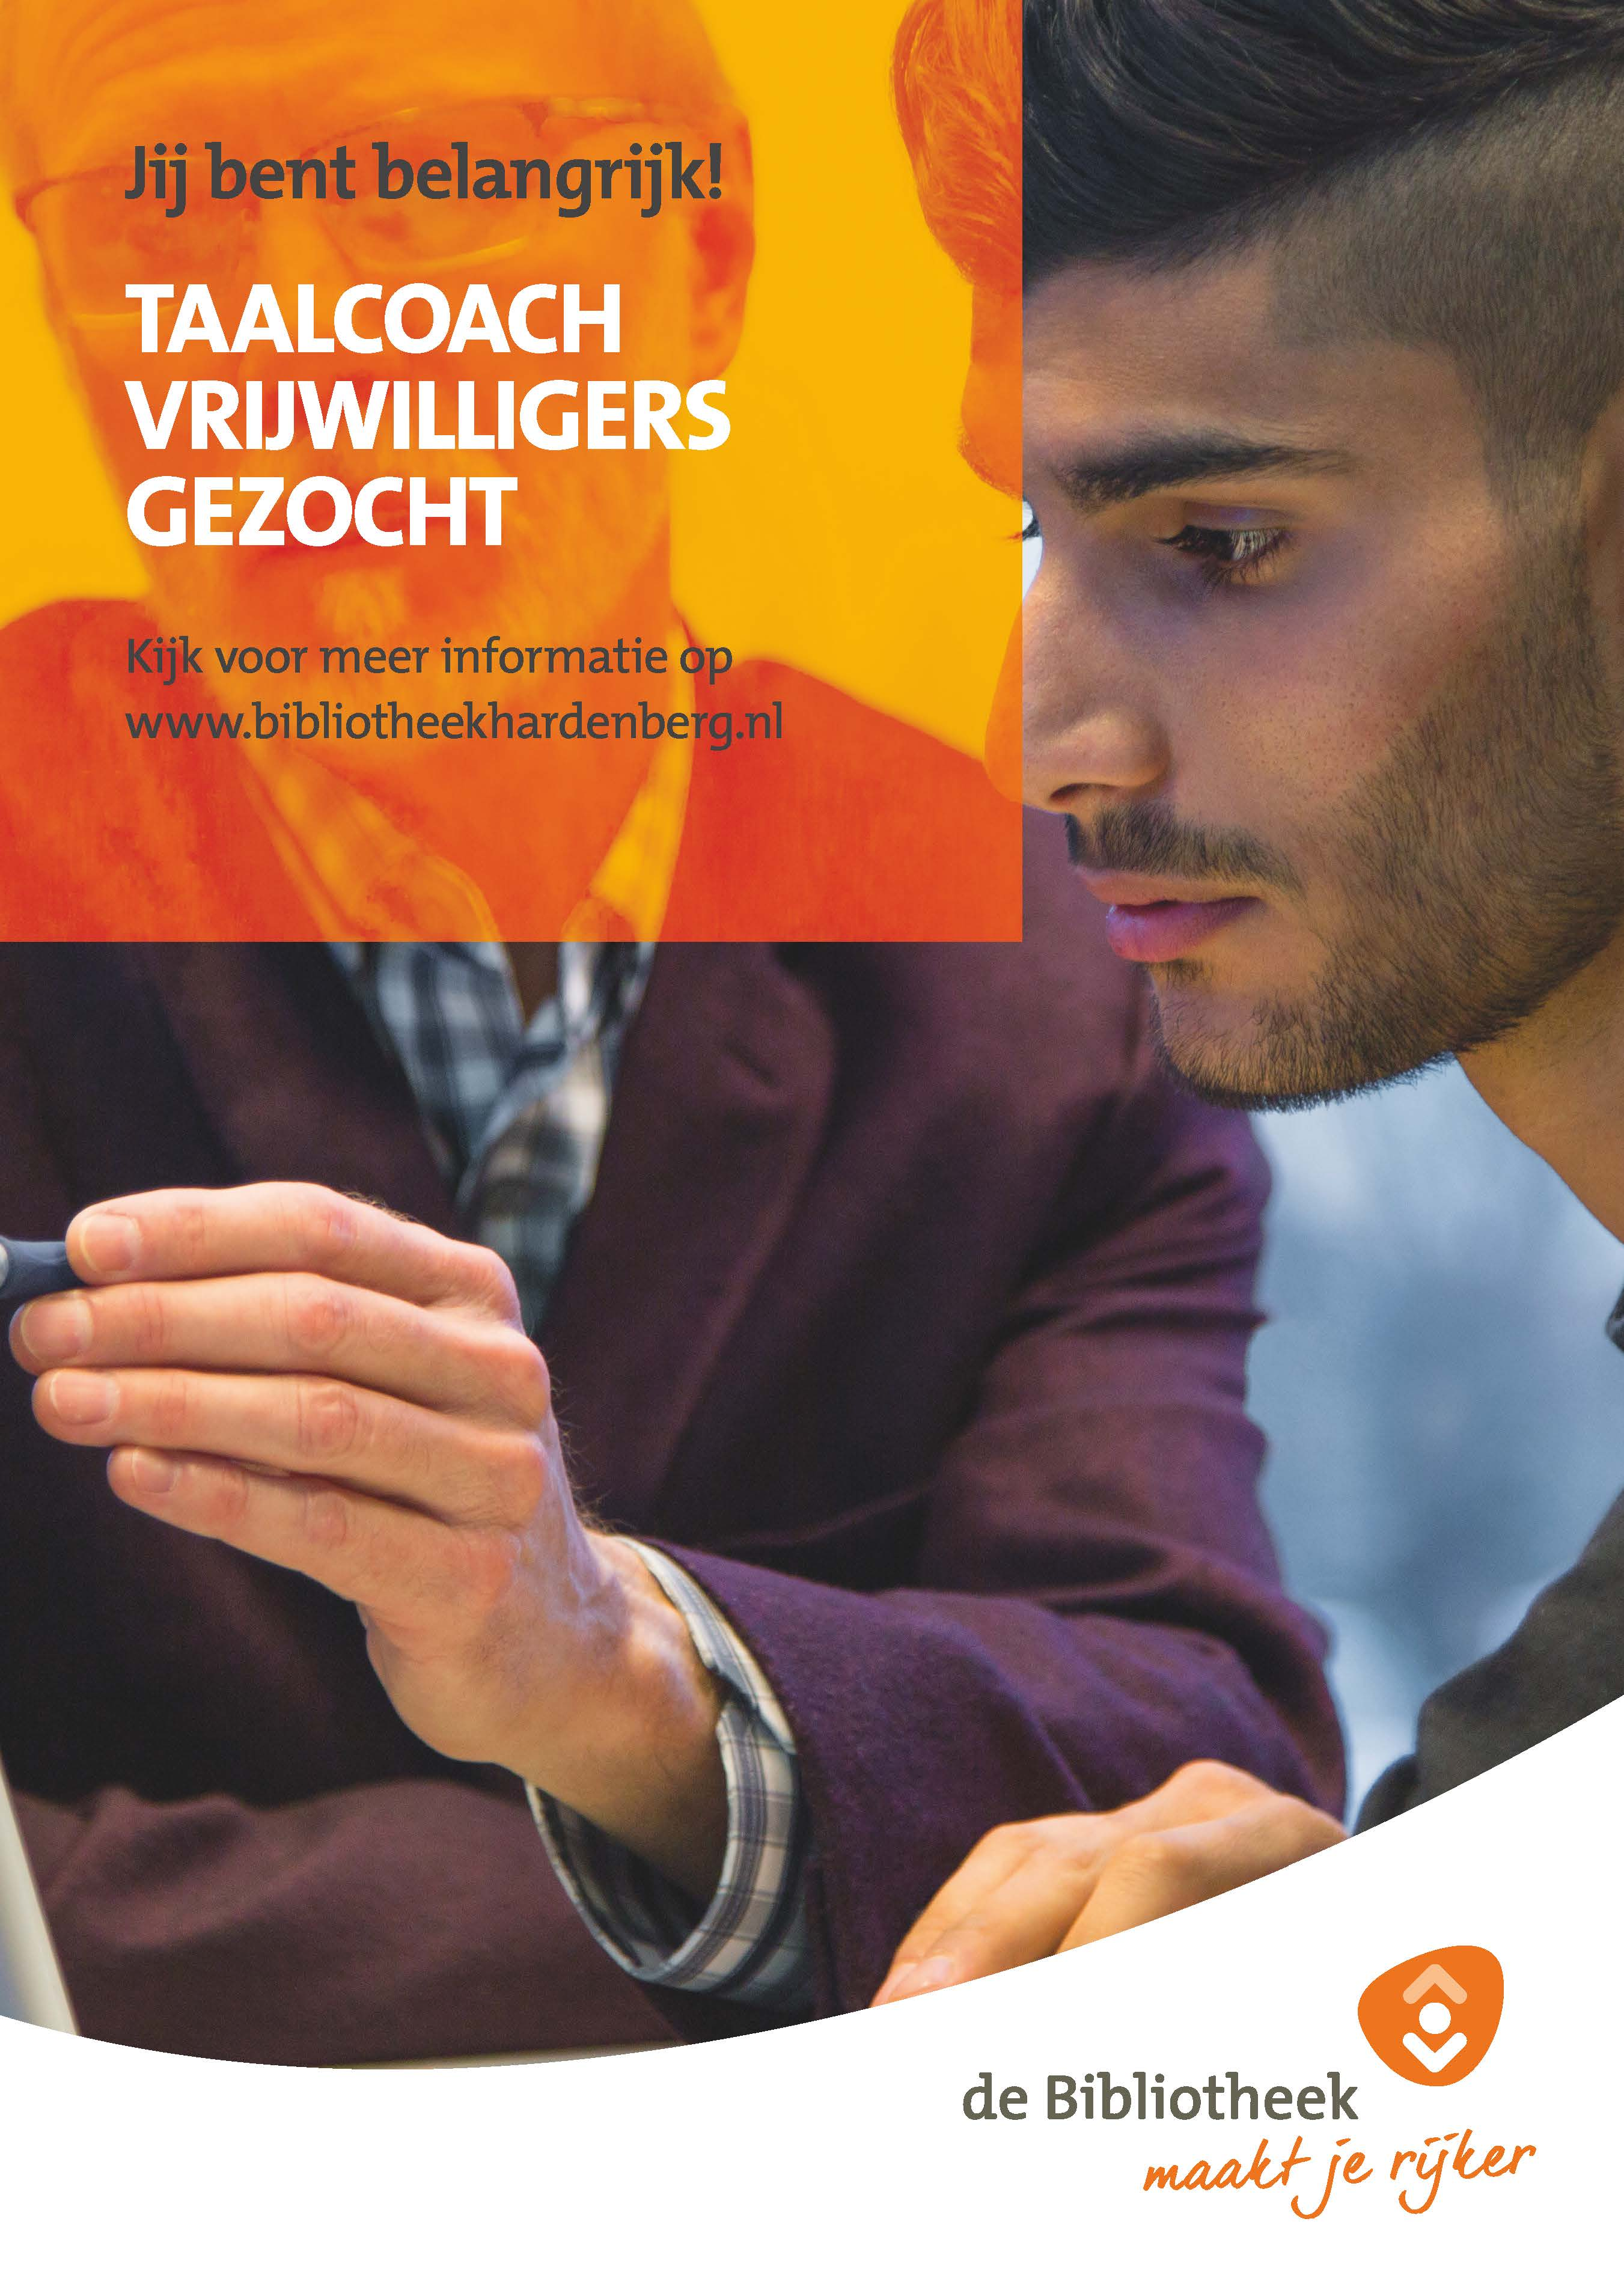 Poster vrijwilligers taalcoach